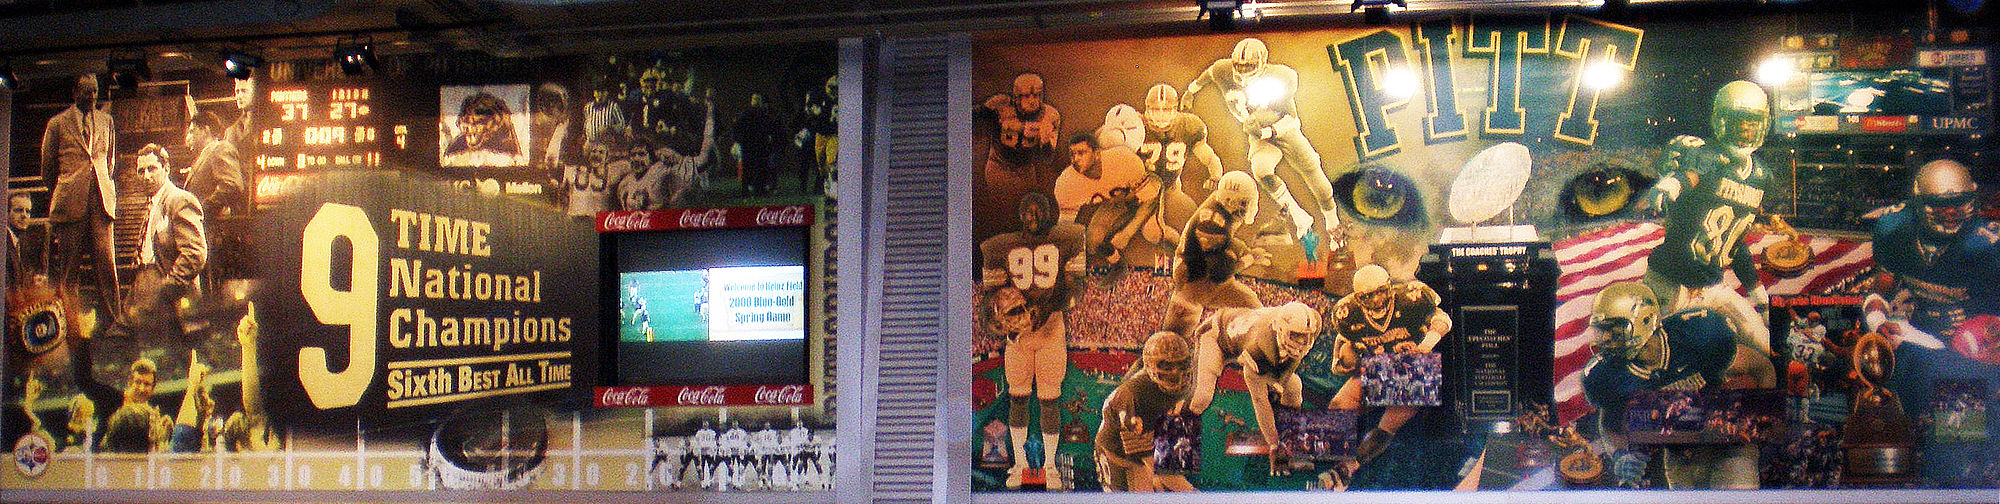 Pitt football murals displayed in the Great Hall of Heinz Field GreatHallPittmuralsCrop.jpg